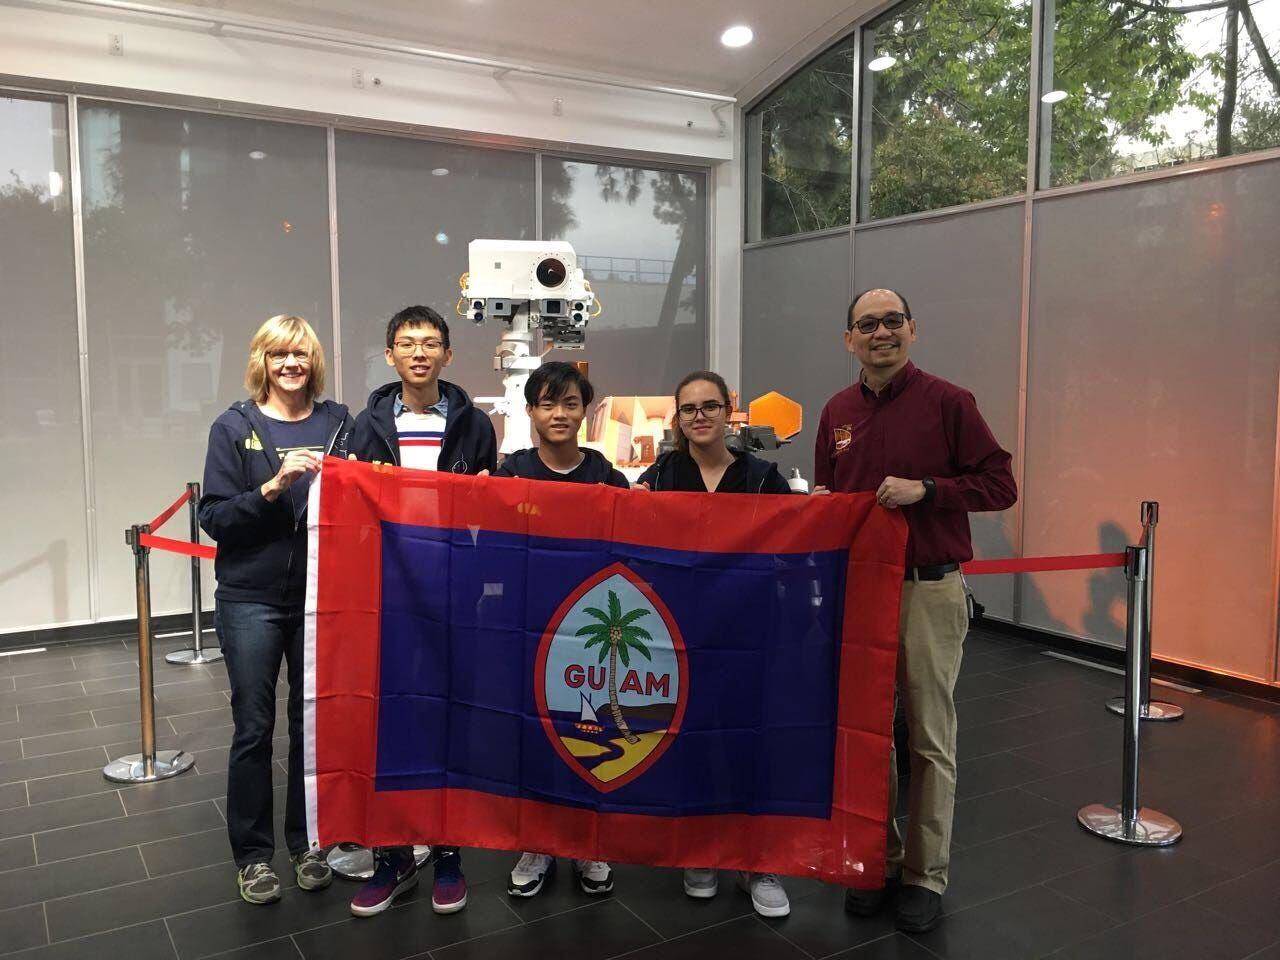 Jpl Team Picture Jfk High School Students And Leo Cheng Dec 2018